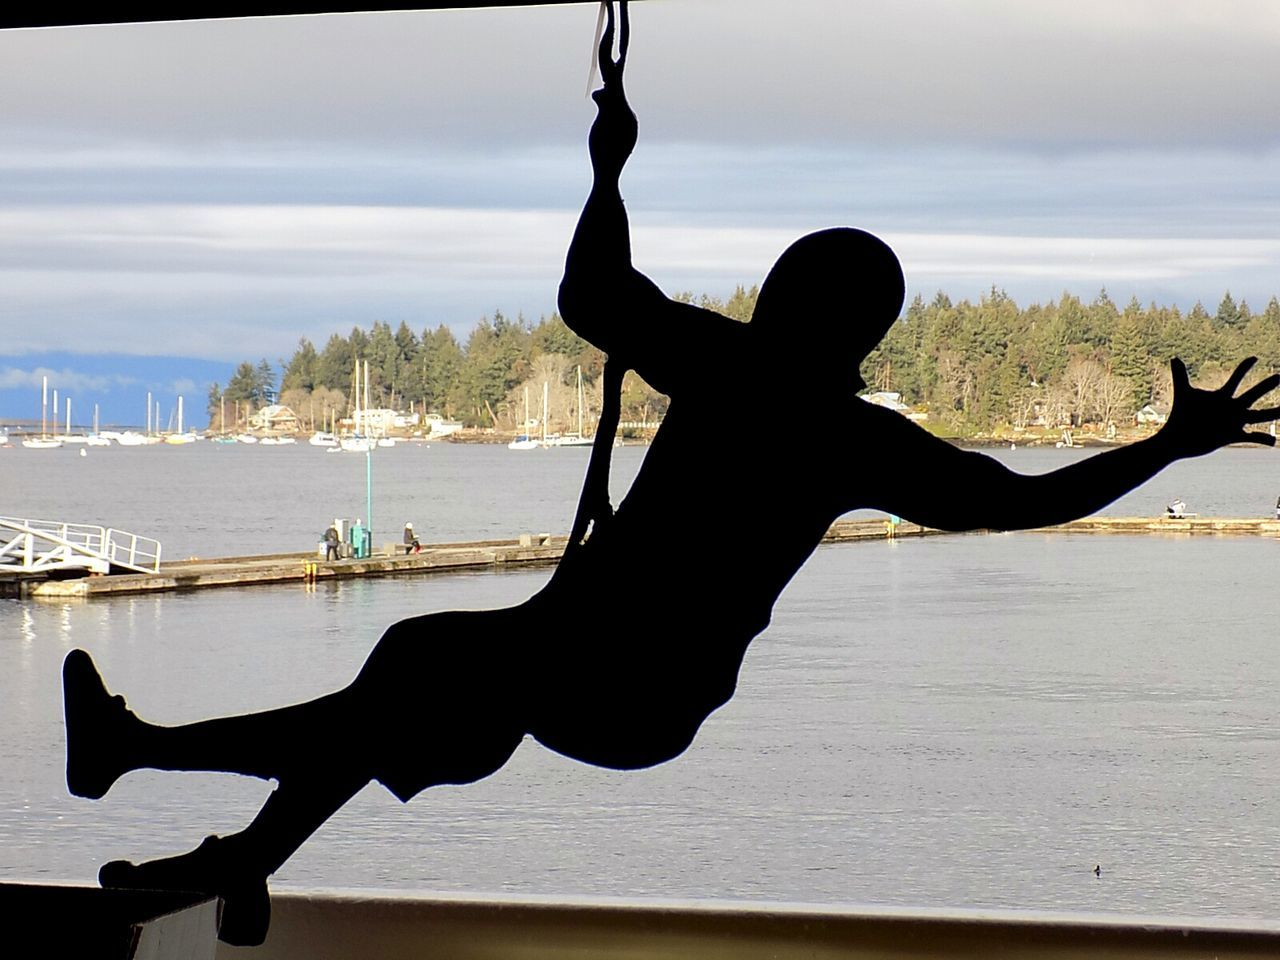 Just Hanging Silhouette One Person Strength Sky Canada 150 EyeEmNewHere Outdoors Vancouver Island Canada Nanaimo BC Harbor: Port, Dock, Haven, Marina; Mooring, Moorage, Anchorage; Waterfront, Harborside